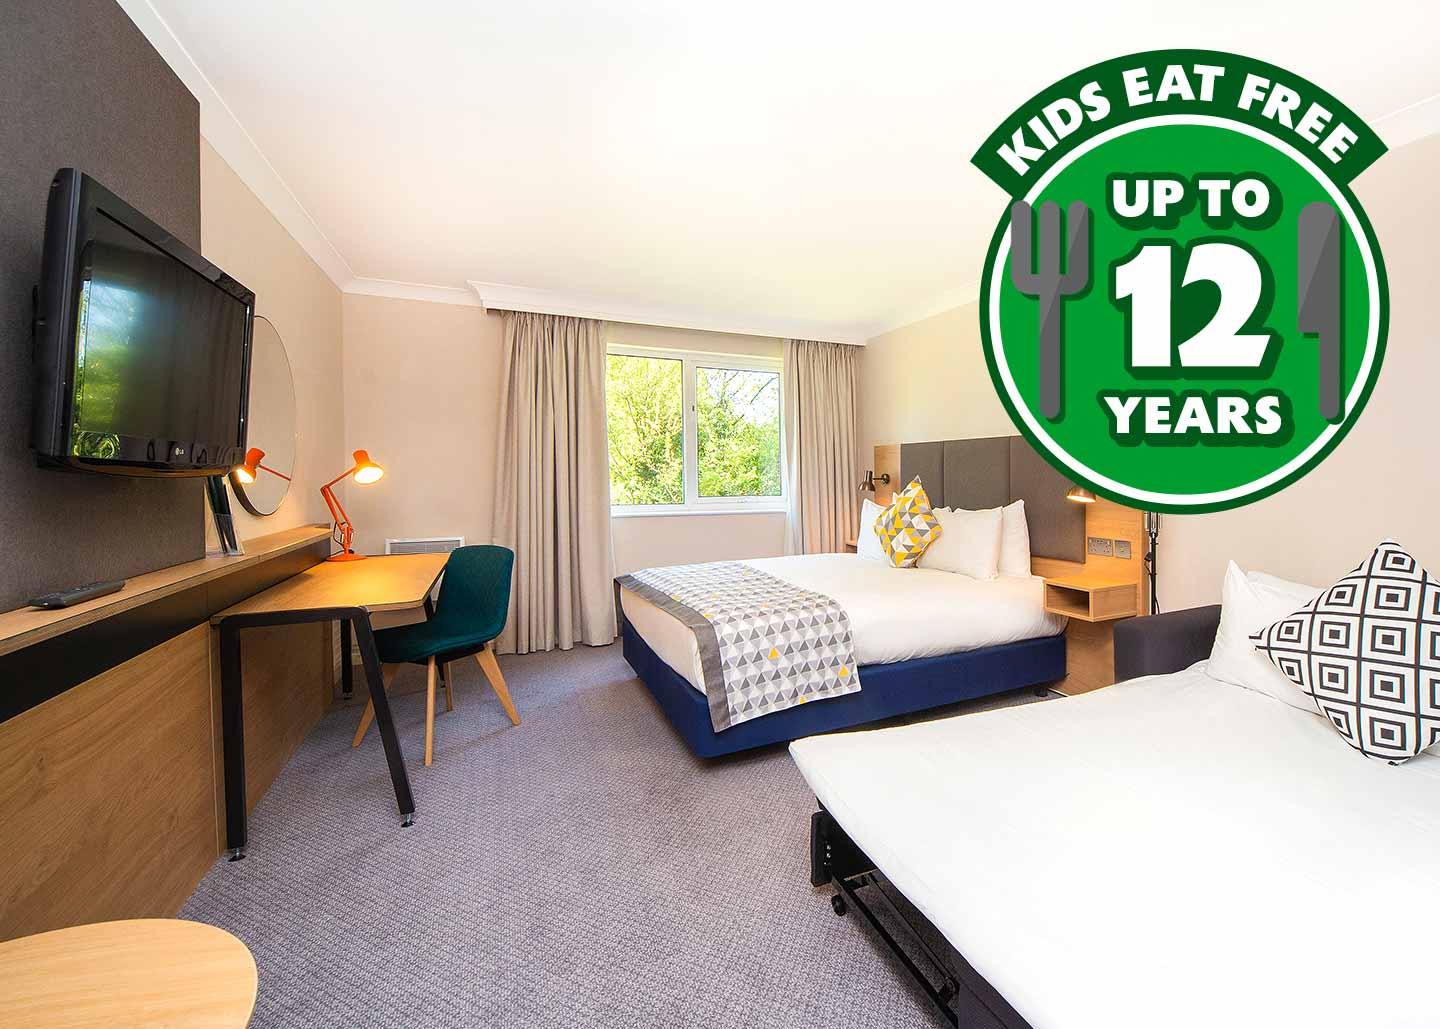 Stay at the Holiday Inn Reading South on your short break